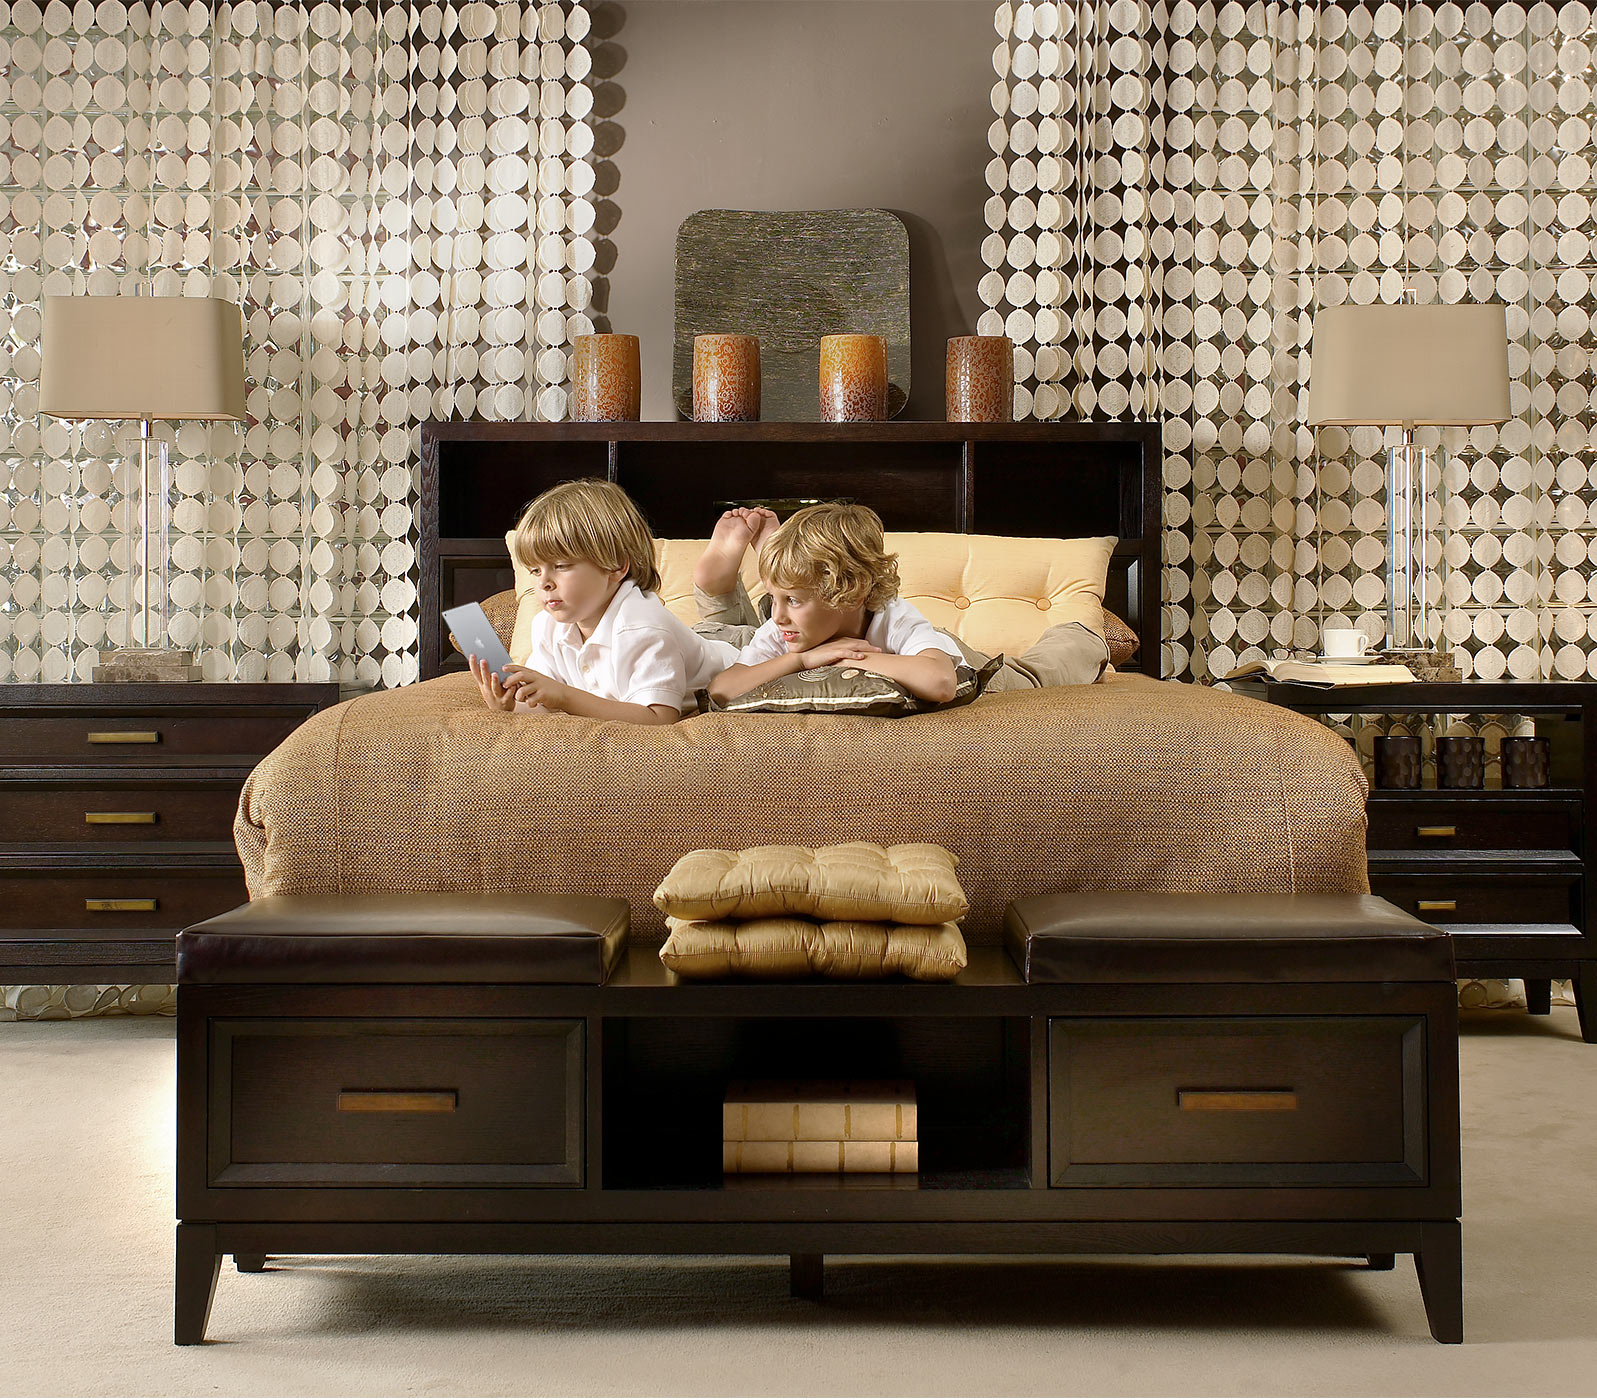 Advertising-Furniture-Photography-Bedroom-Children